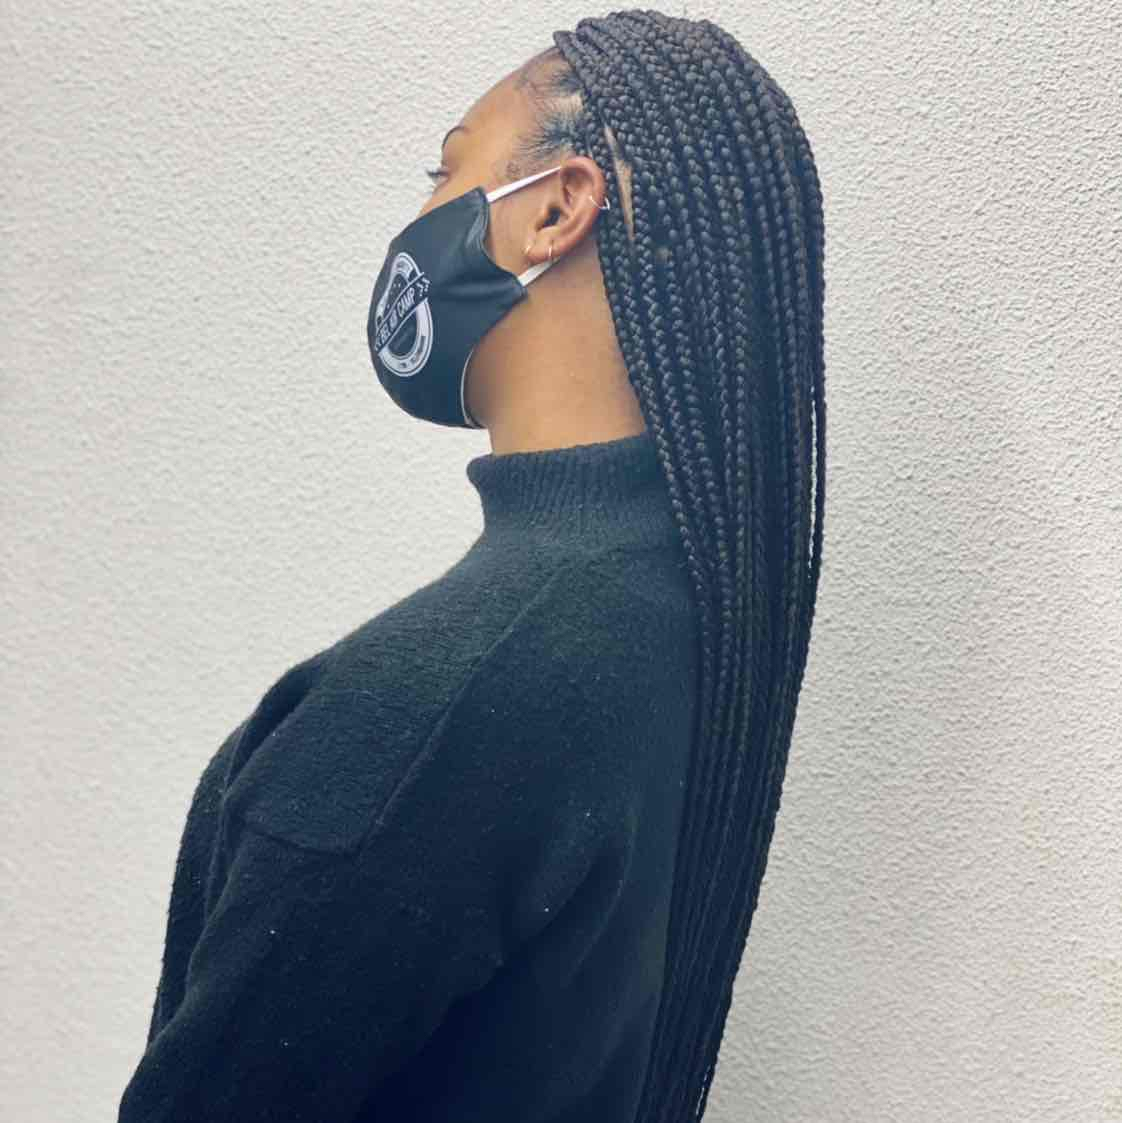 salon de coiffure afro tresse tresses box braids crochet braids vanilles tissages paris 75 77 78 91 92 93 94 95 FKDICBOS